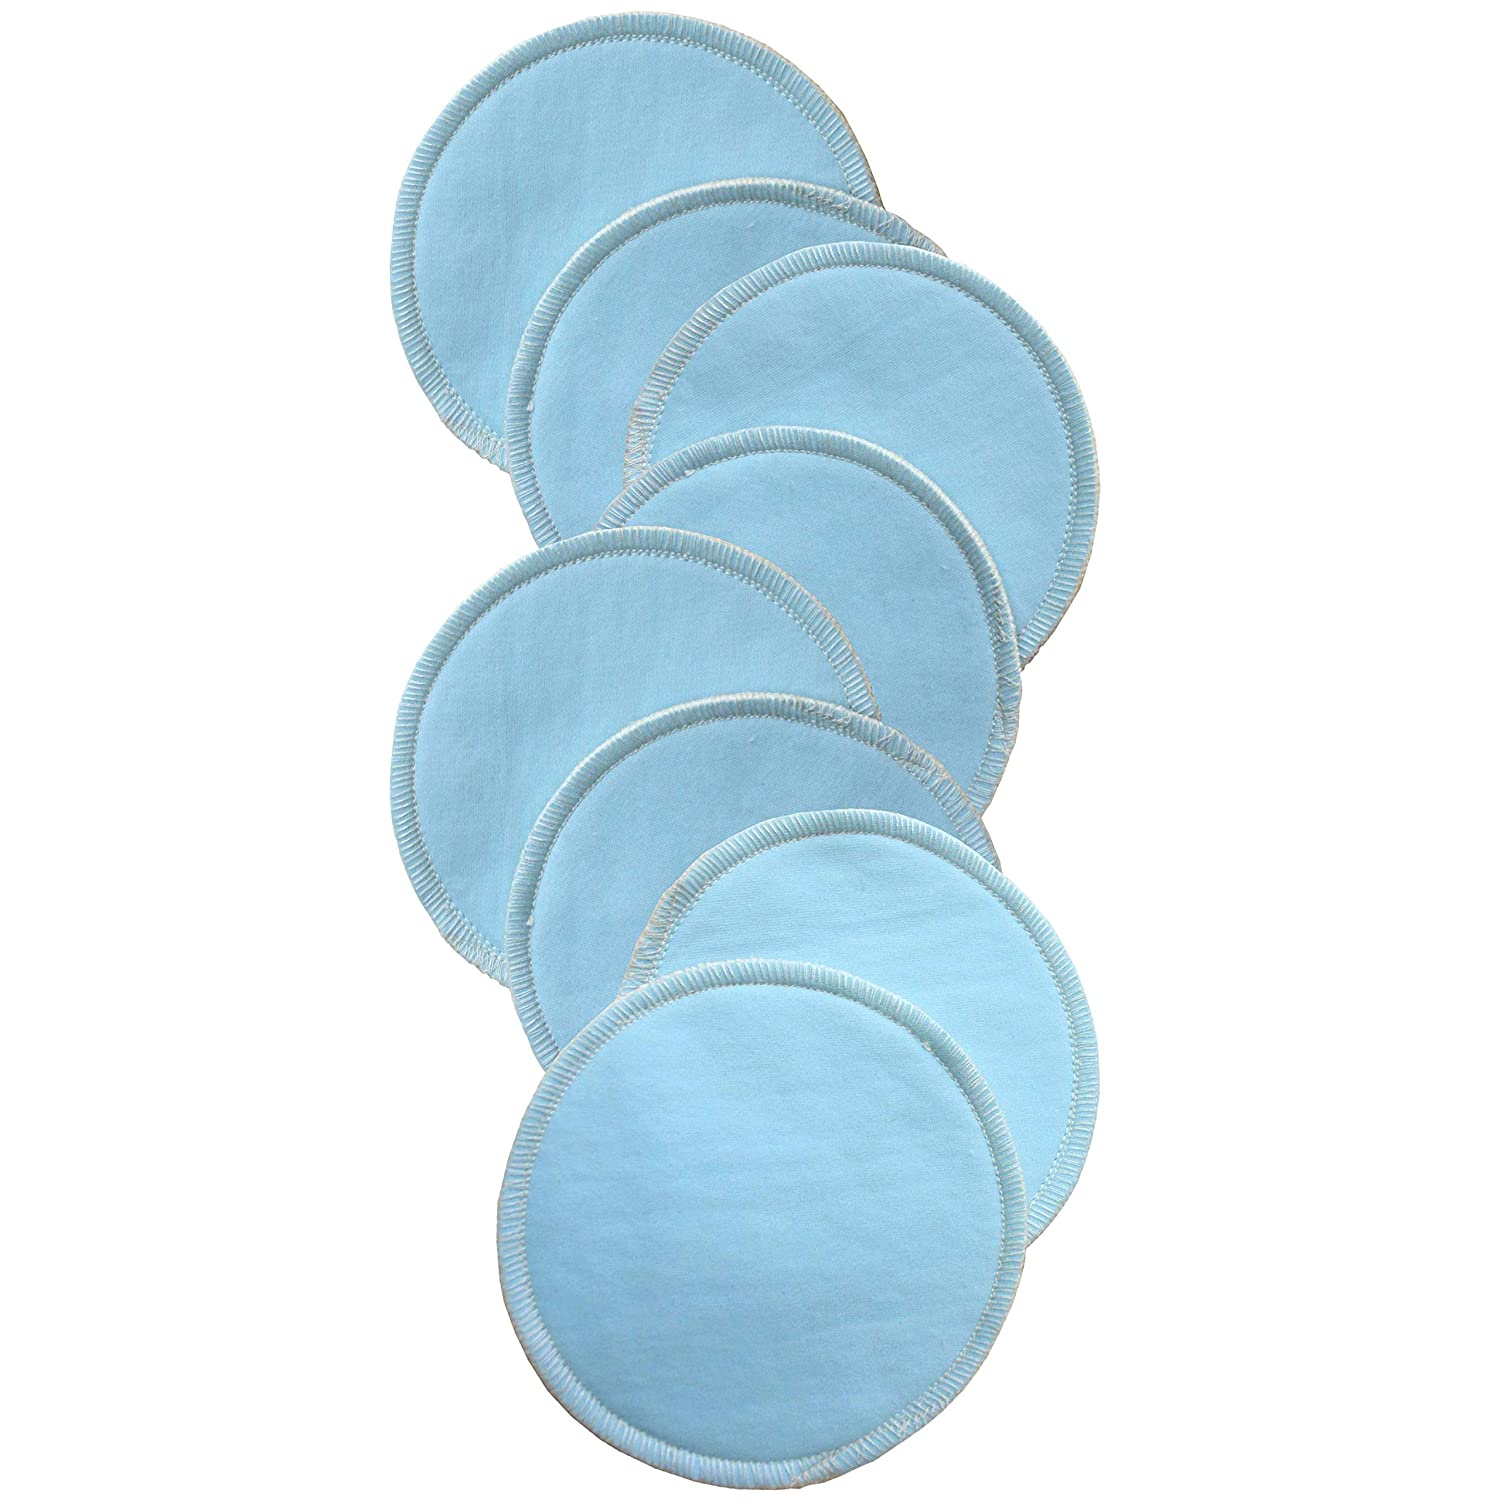 4 Overnight Pairs Bamboobies Nursing Pads for Breastfeeding Reusable Breast Pads Perfect Baby Shower Gifts